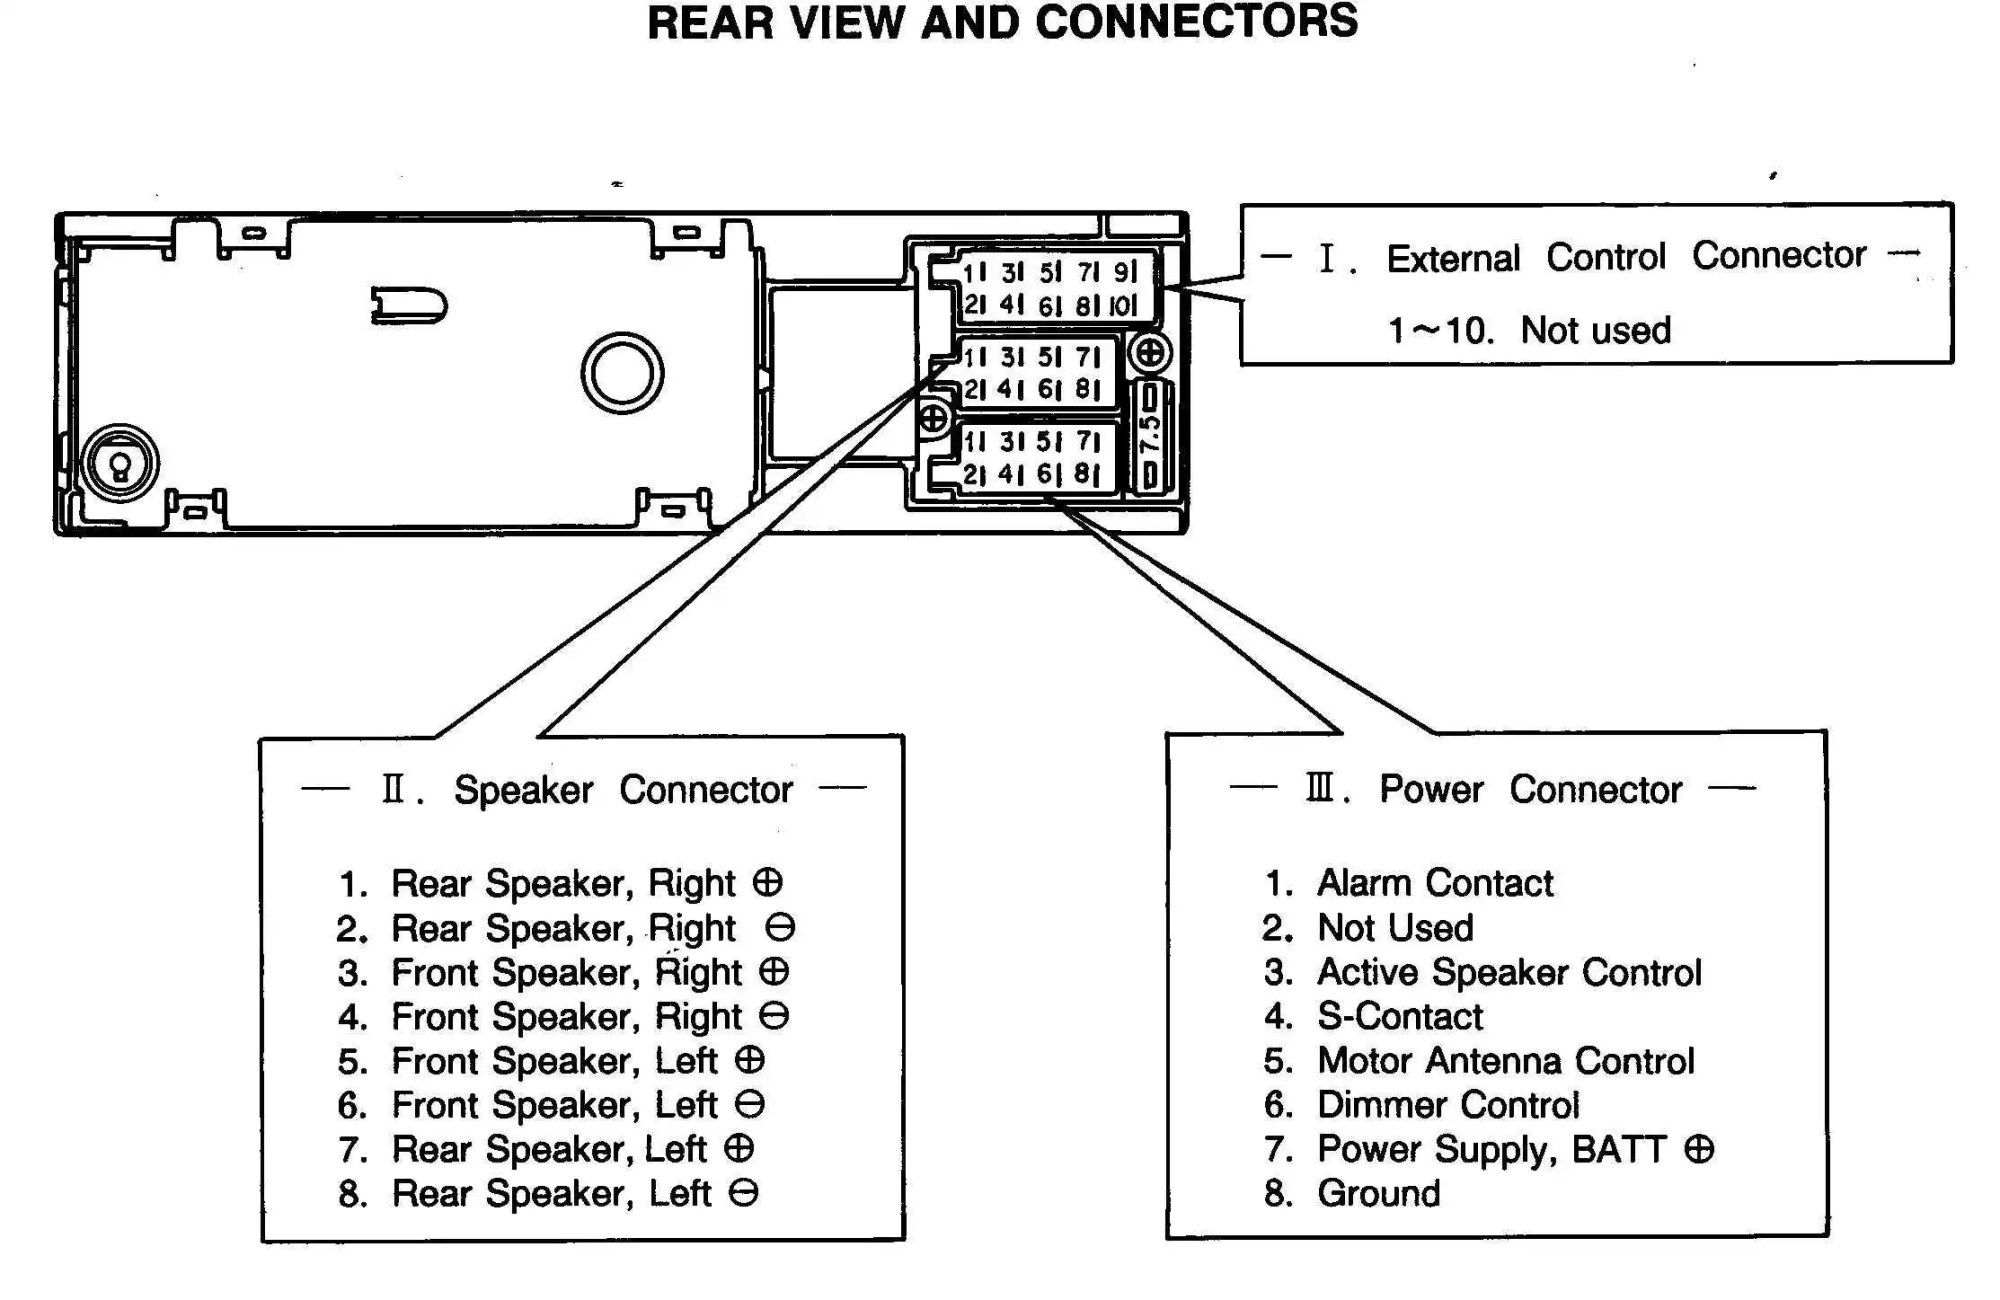 hight resolution of car stereo speaker wiring diagram wiring diagram blogs clarion drx5675 wiring diagram pdf wiring diagram clarion radio made 1998